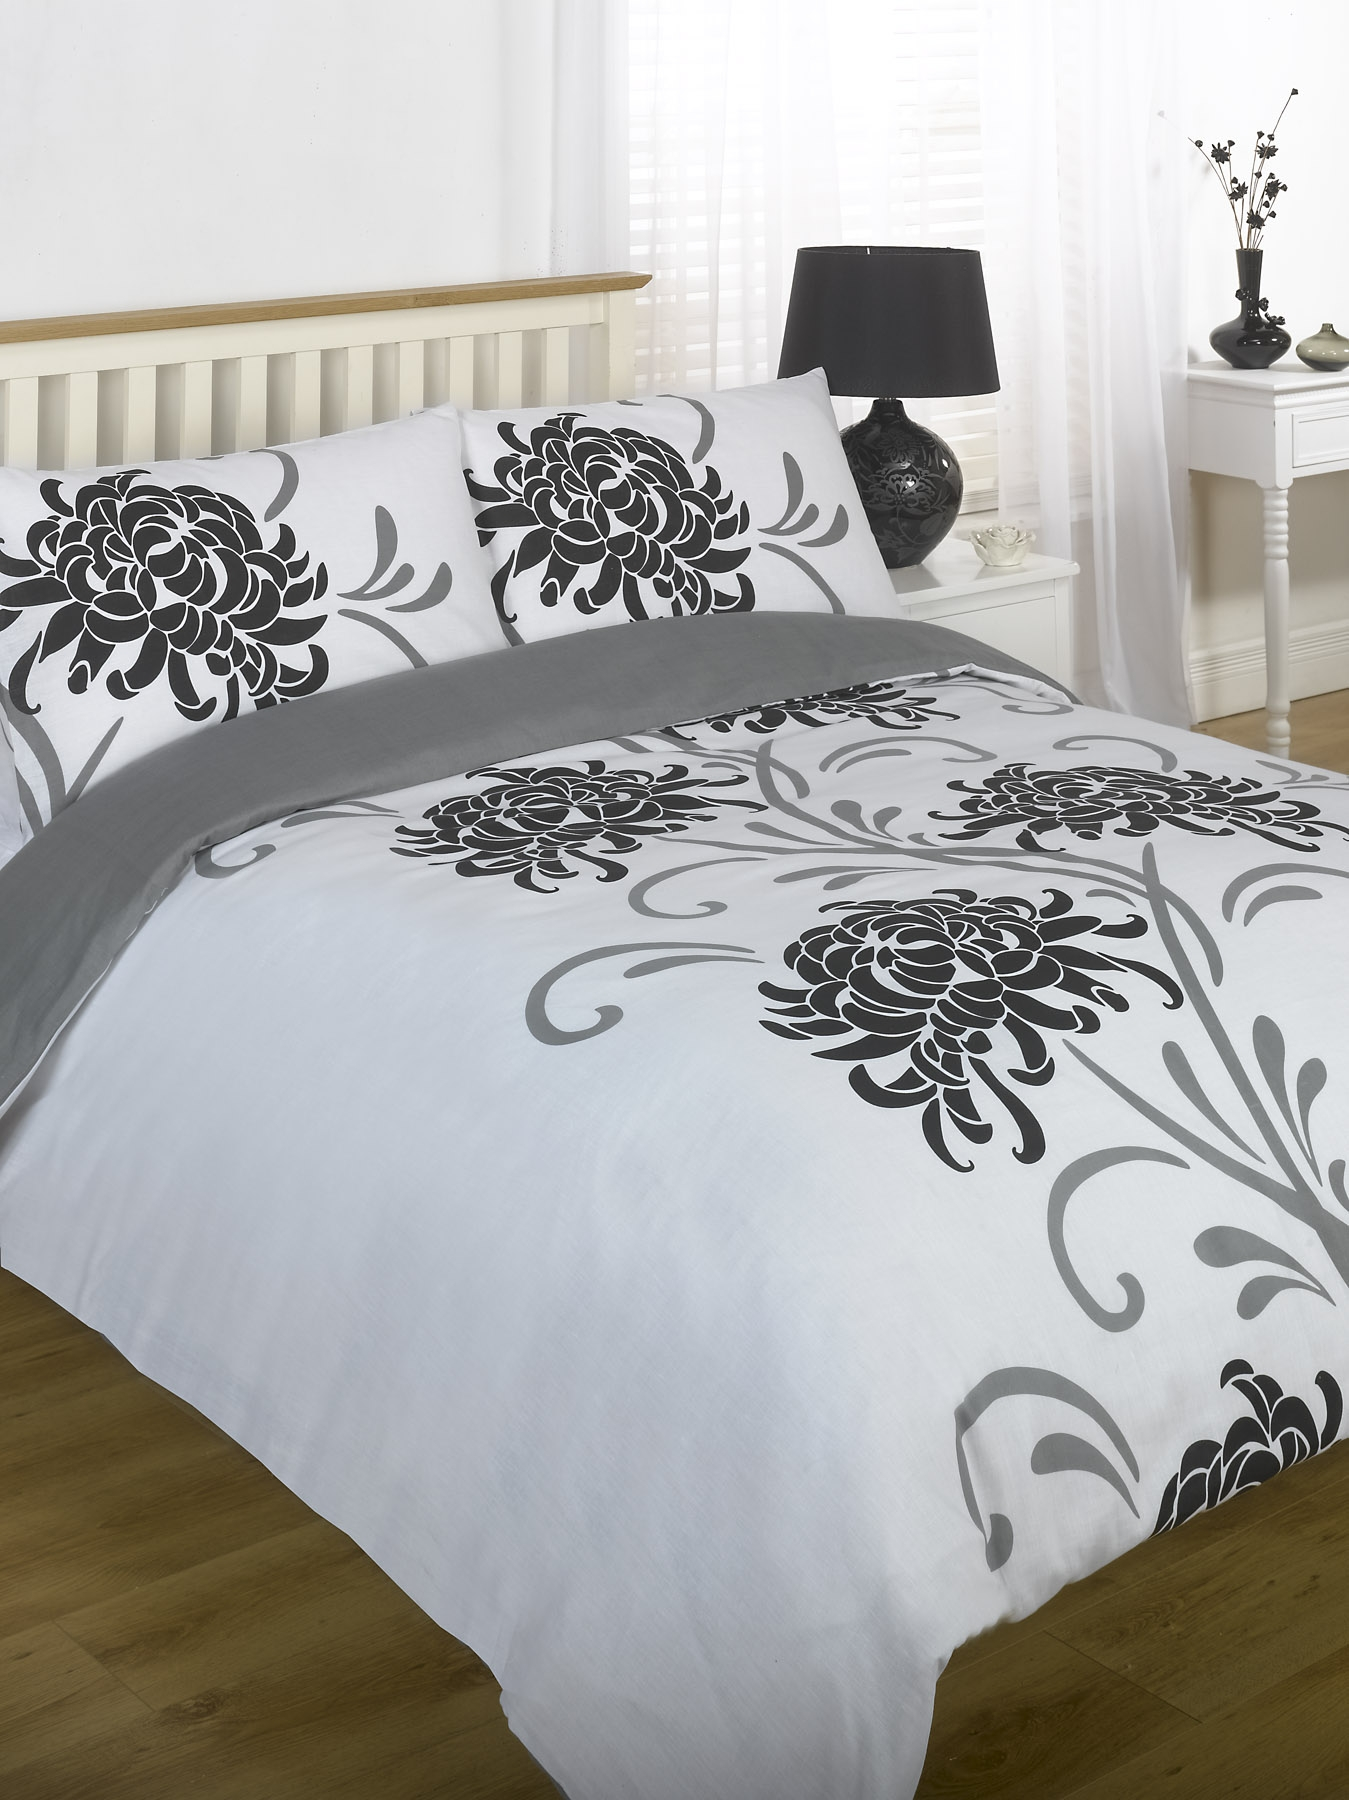 Duvet Quilt Cover Bedding Set Black White Single Double King